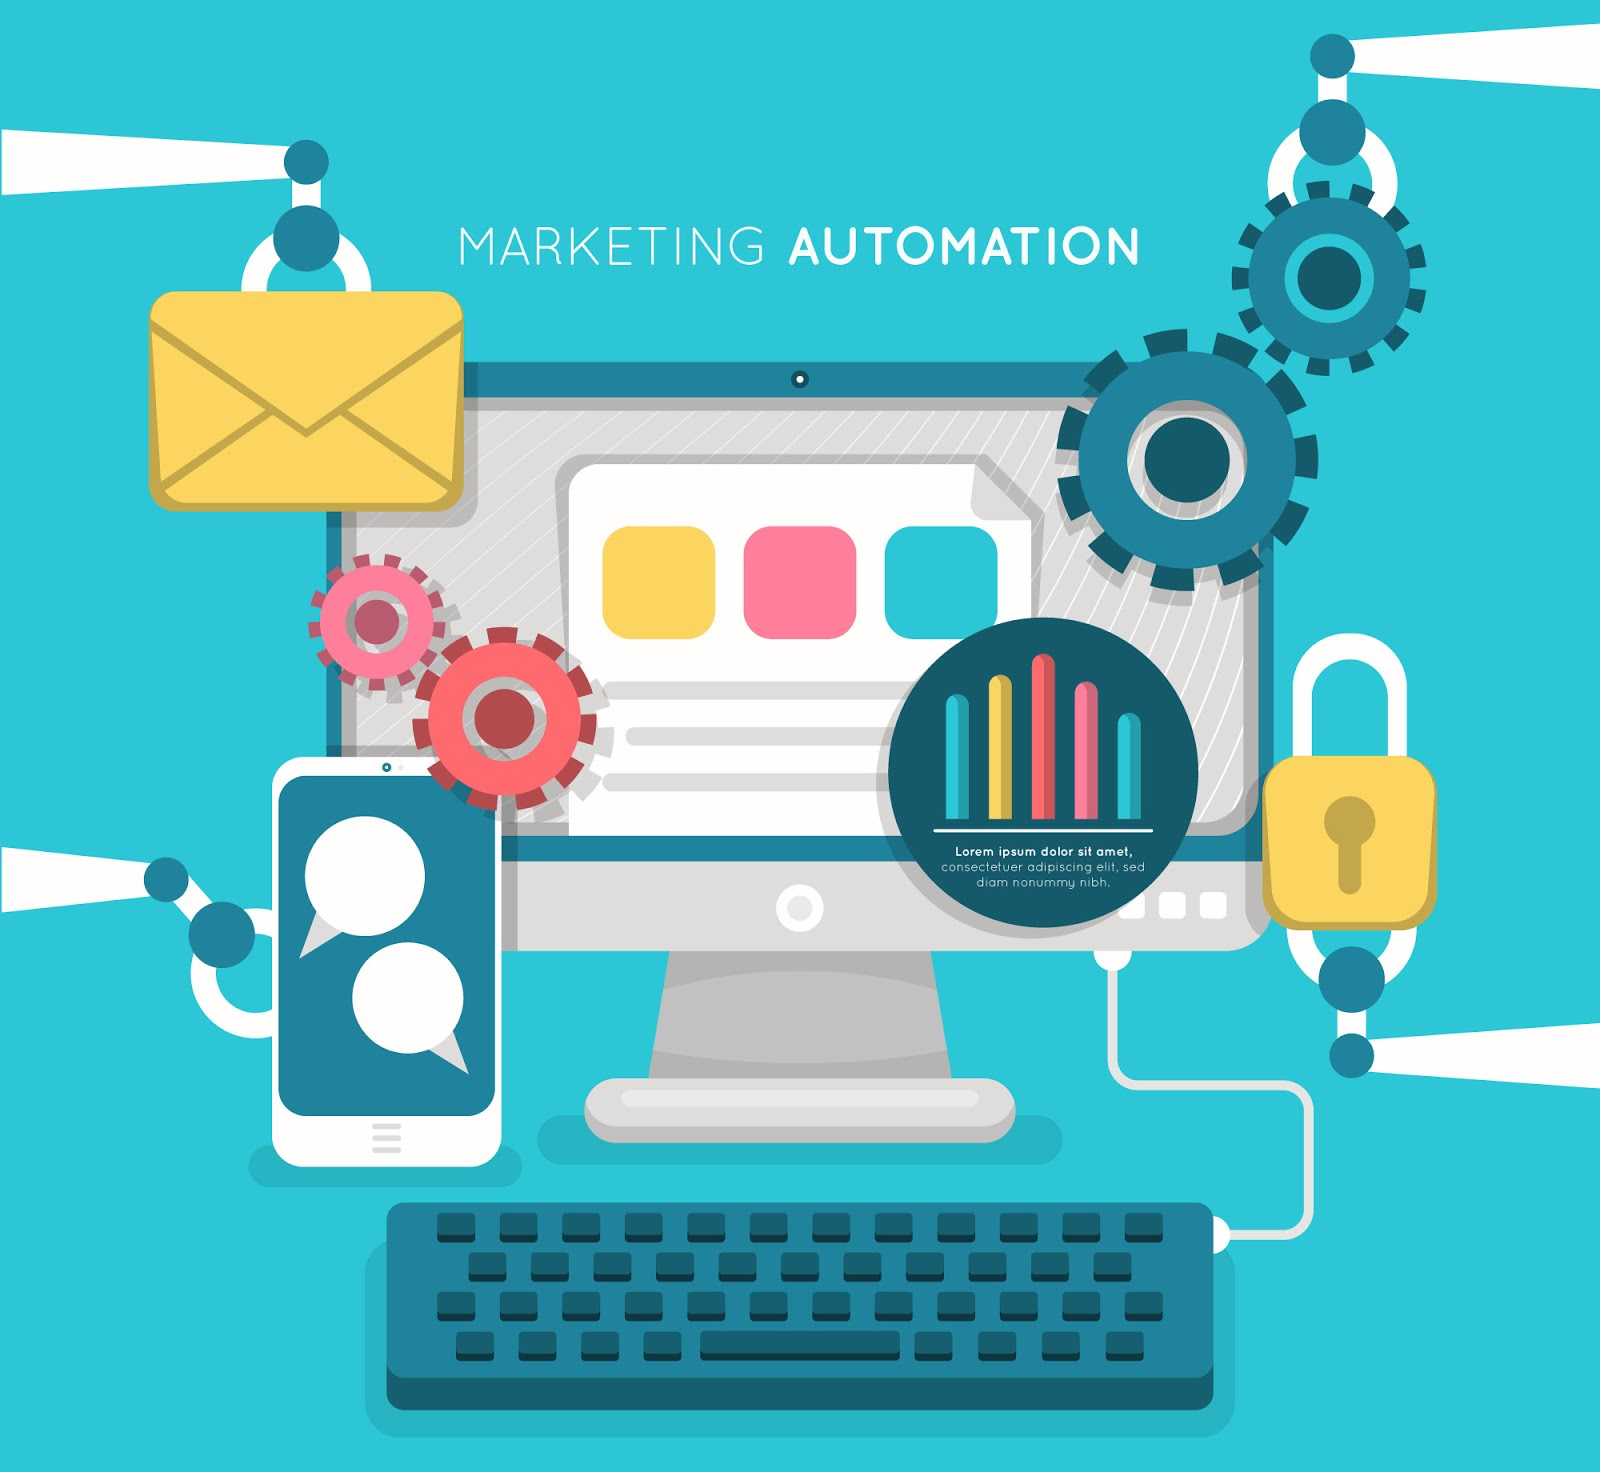 abm marketing automation